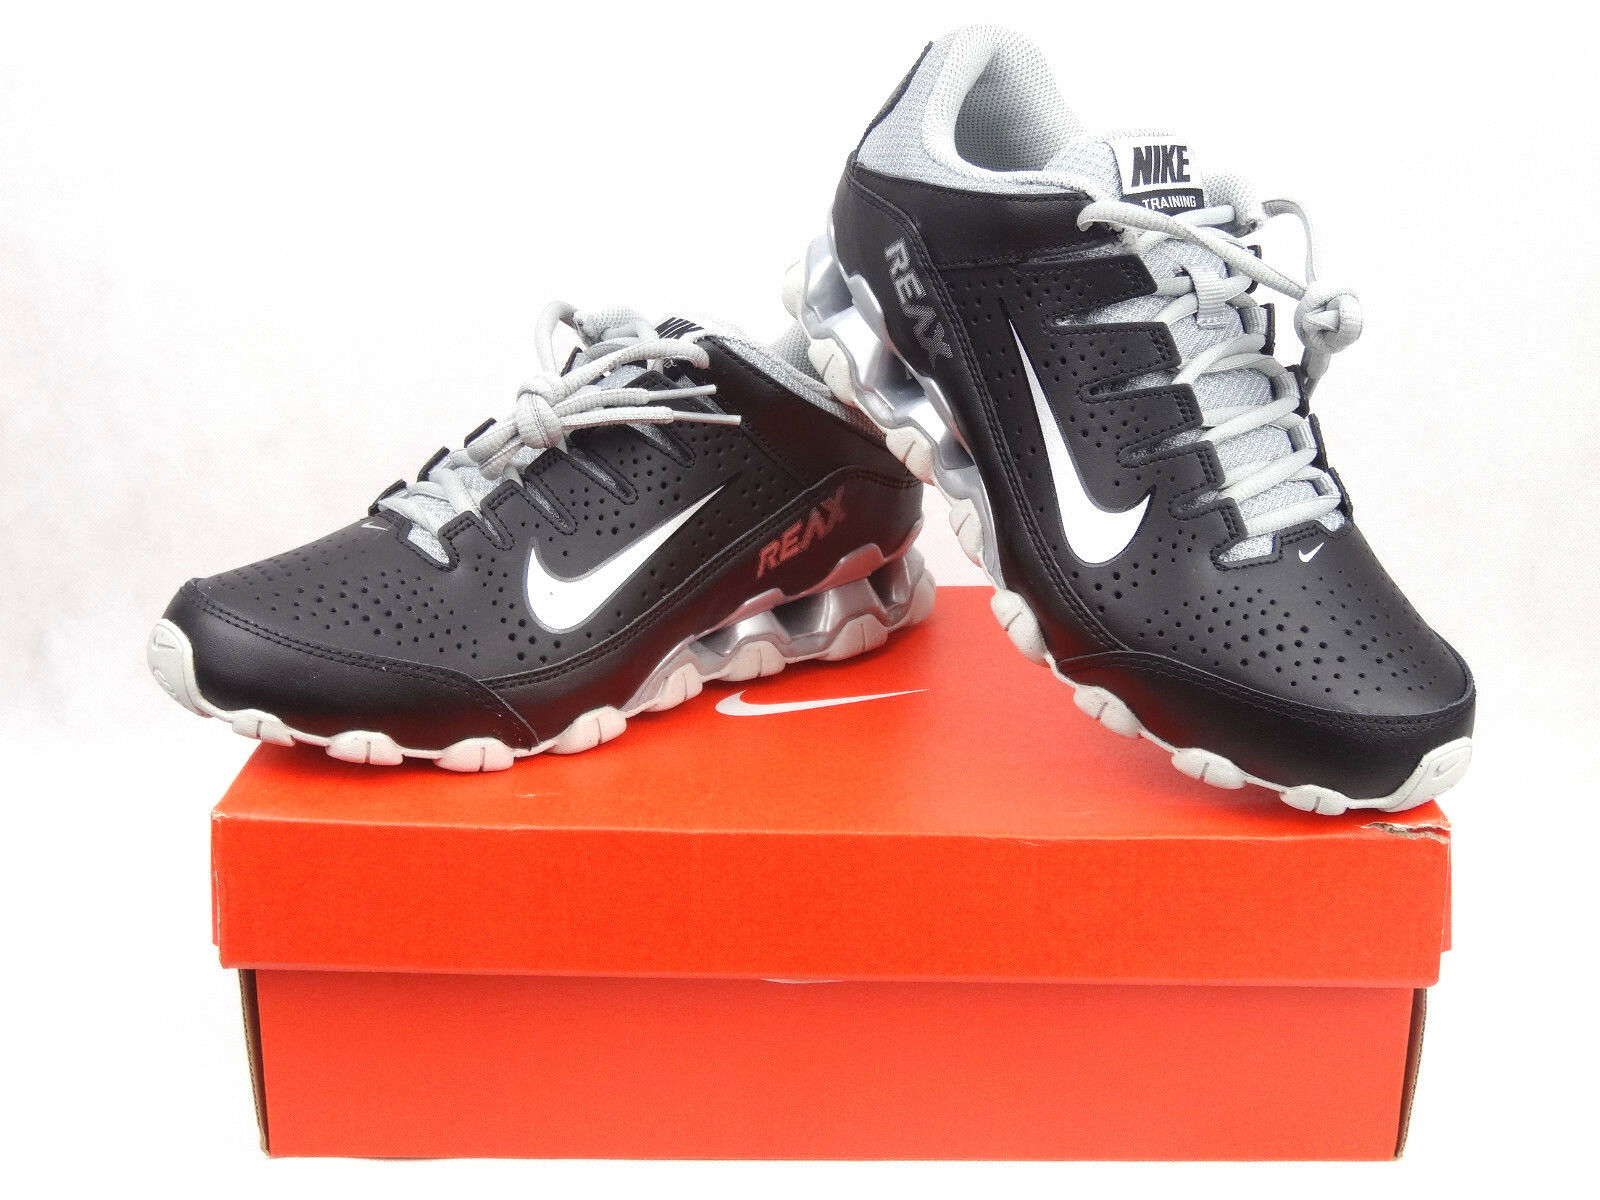 Nike Reax 8 tr Men's trainer size shoes Black White